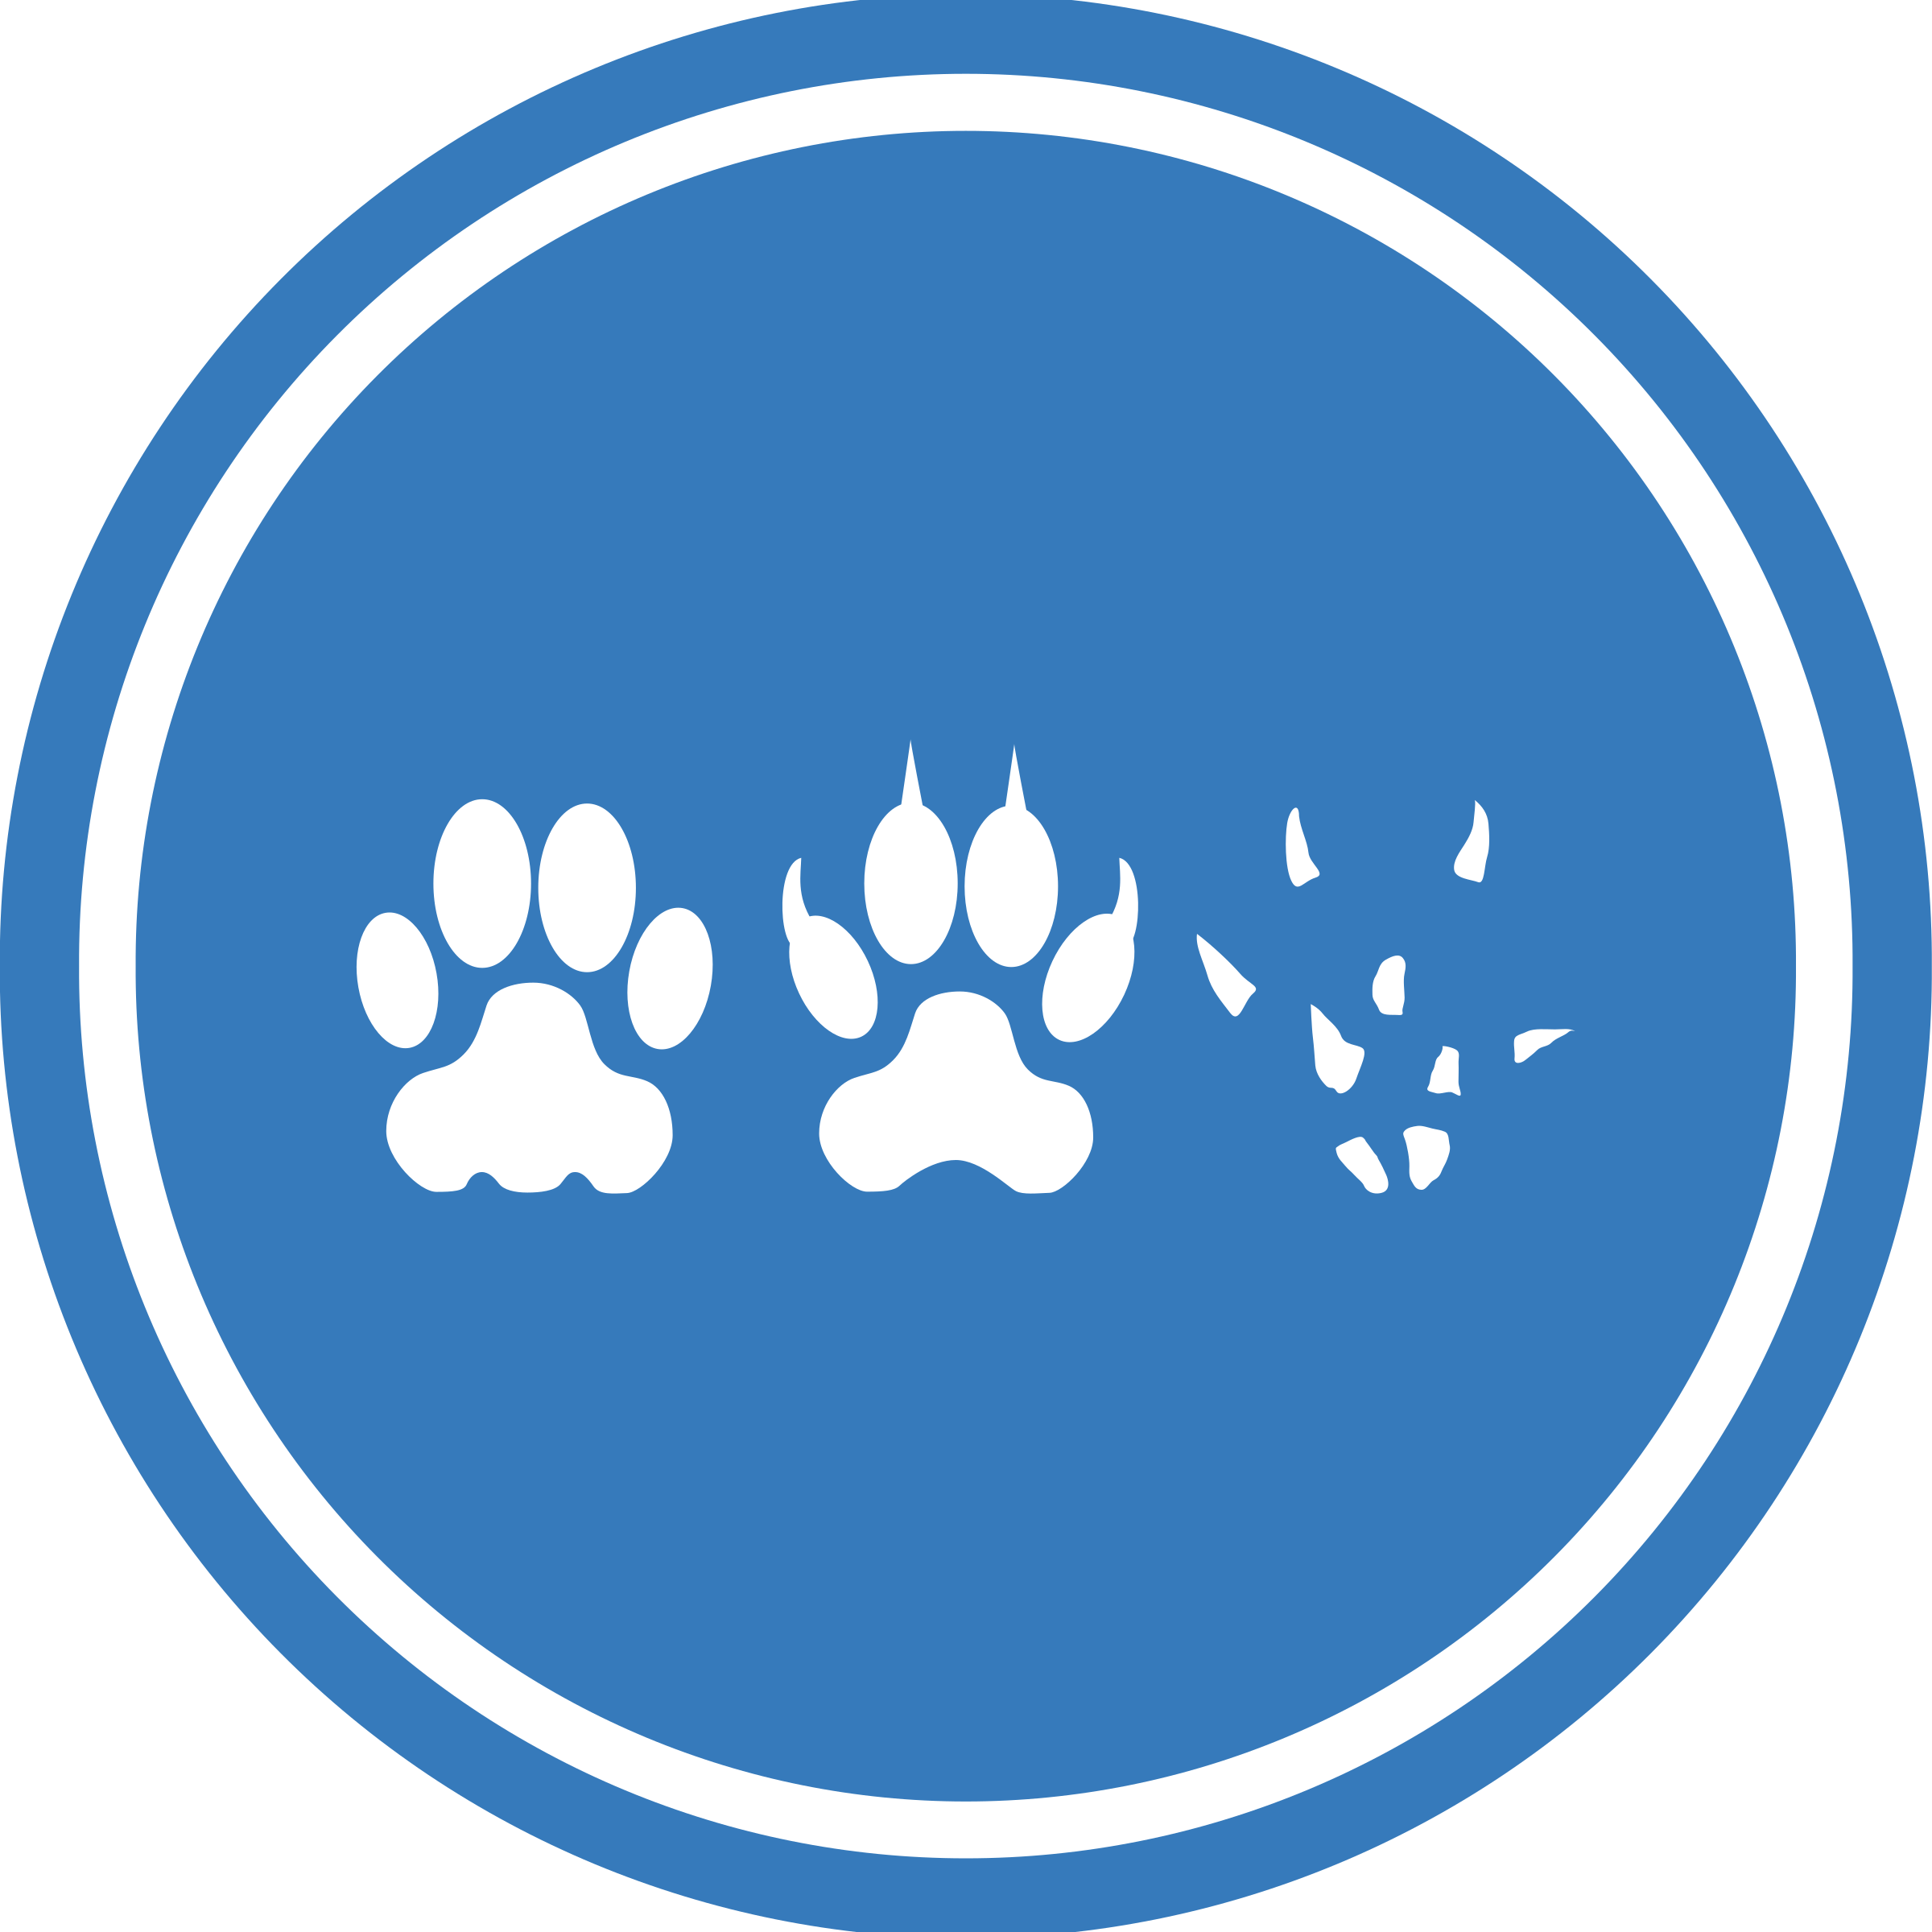 Cat-Dog-Mouse Unification Peace Logo by qubodup